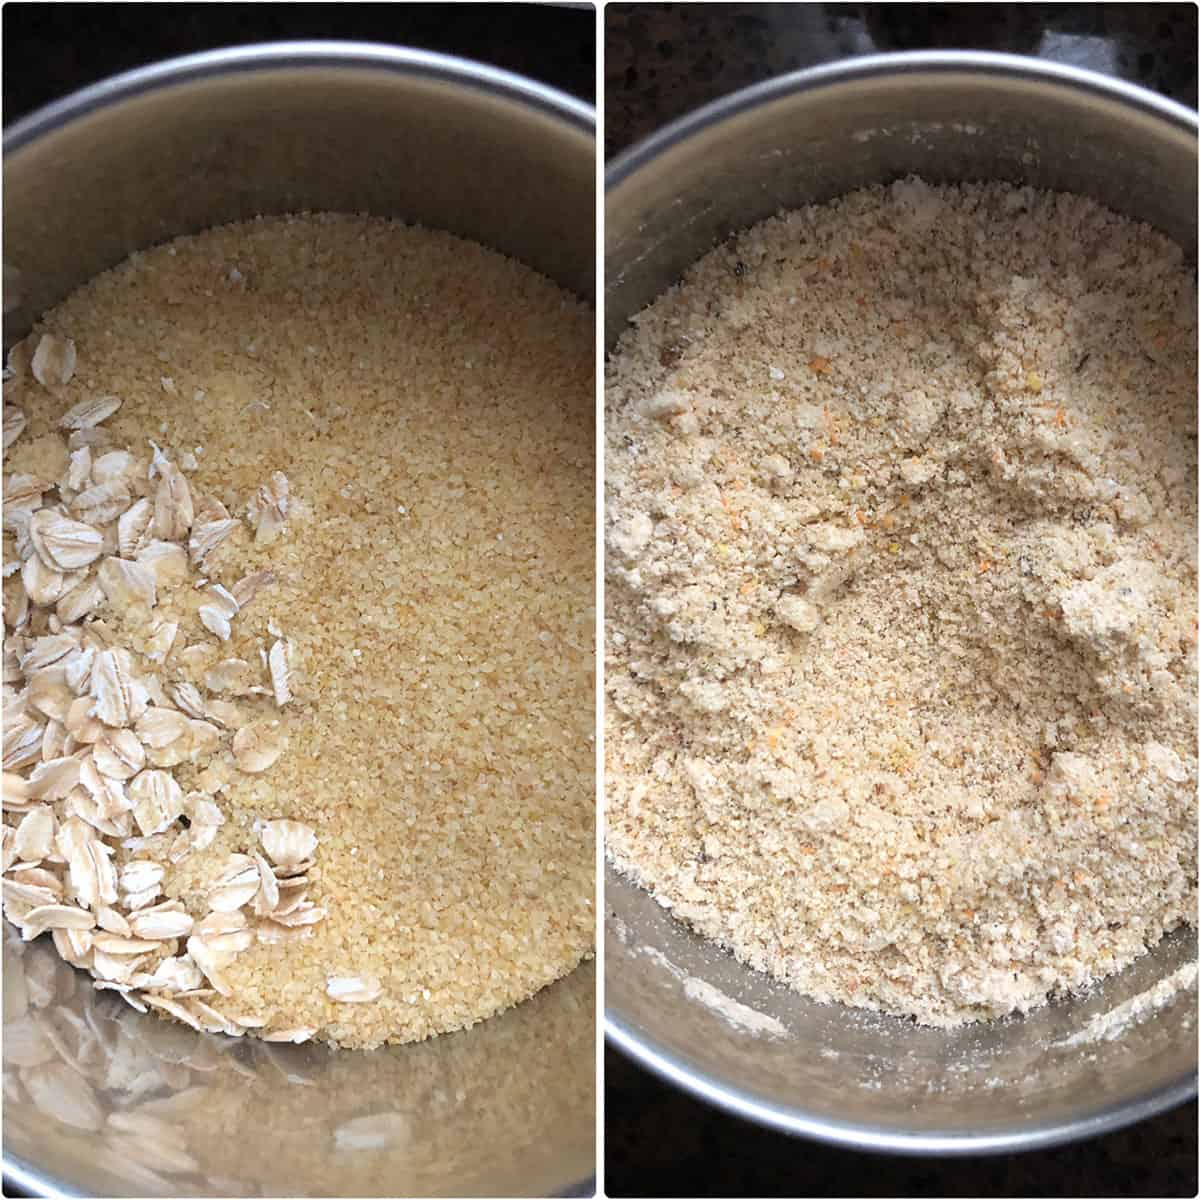 Side by side photos of before and after grinding the oats, cracked wheat and spices